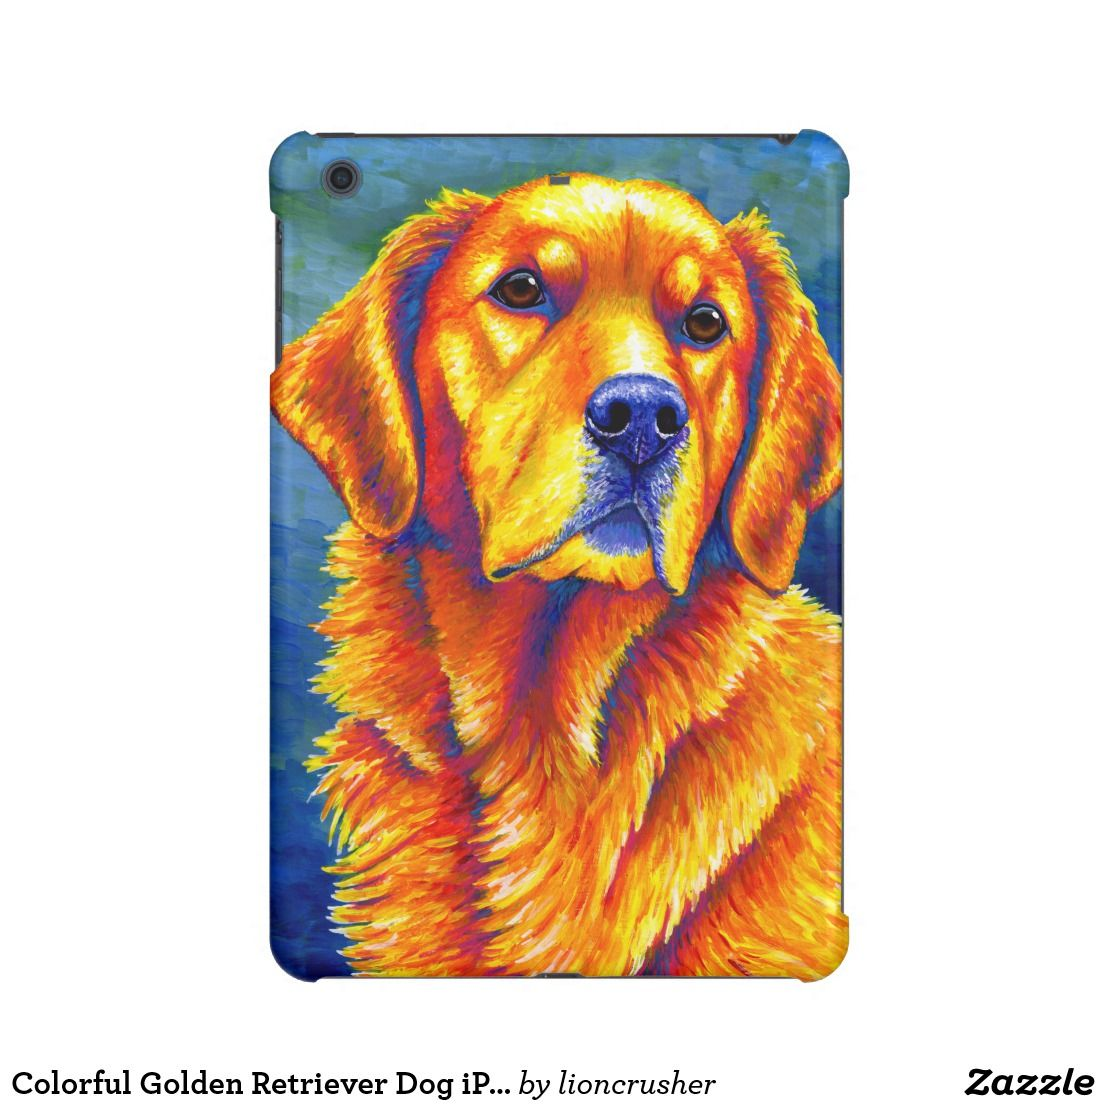 Colorful Golden Retriever Dog Case Savvy Ipad Case Zazzle Com